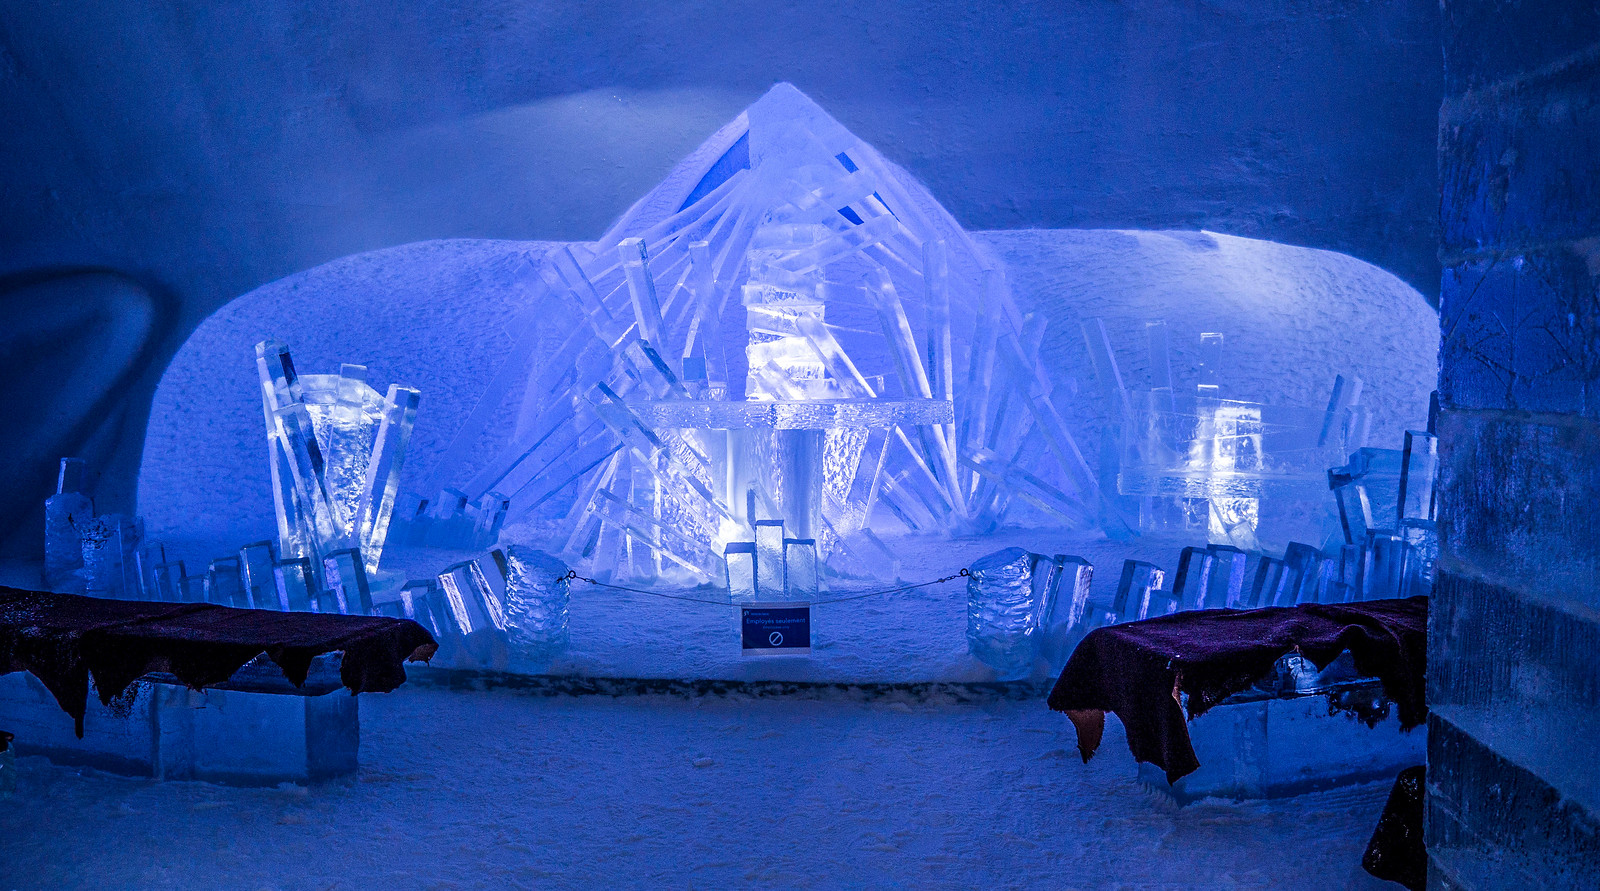 Ice Hotel Quebec: An Insider's Guide to Surviving the Night - Ice wedding chapel